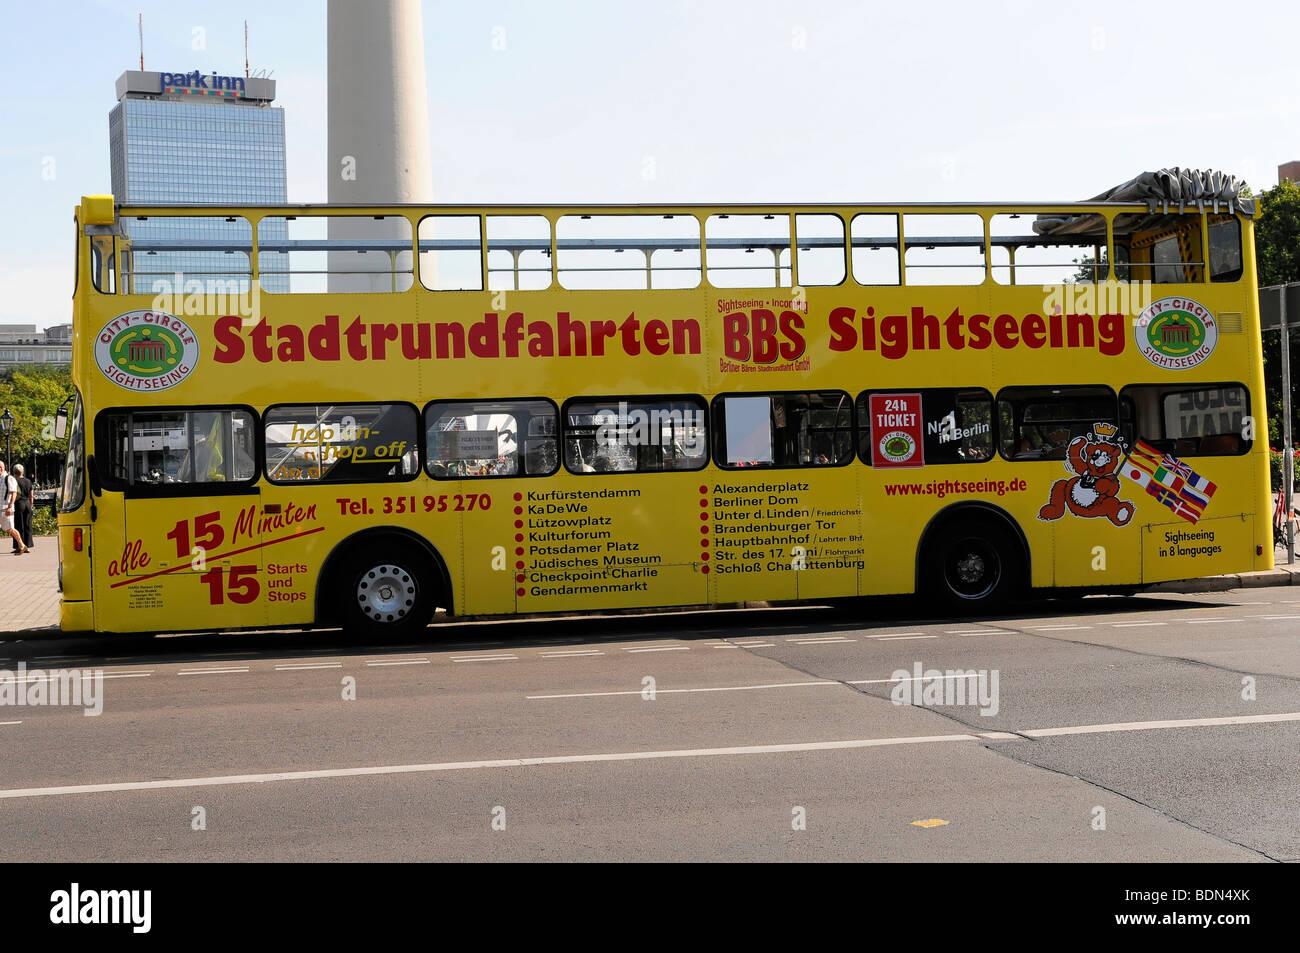 Sightseeing bus driving near the Fernsehturm TV tower, capital Berlin, Germany, Europe - Stock Image